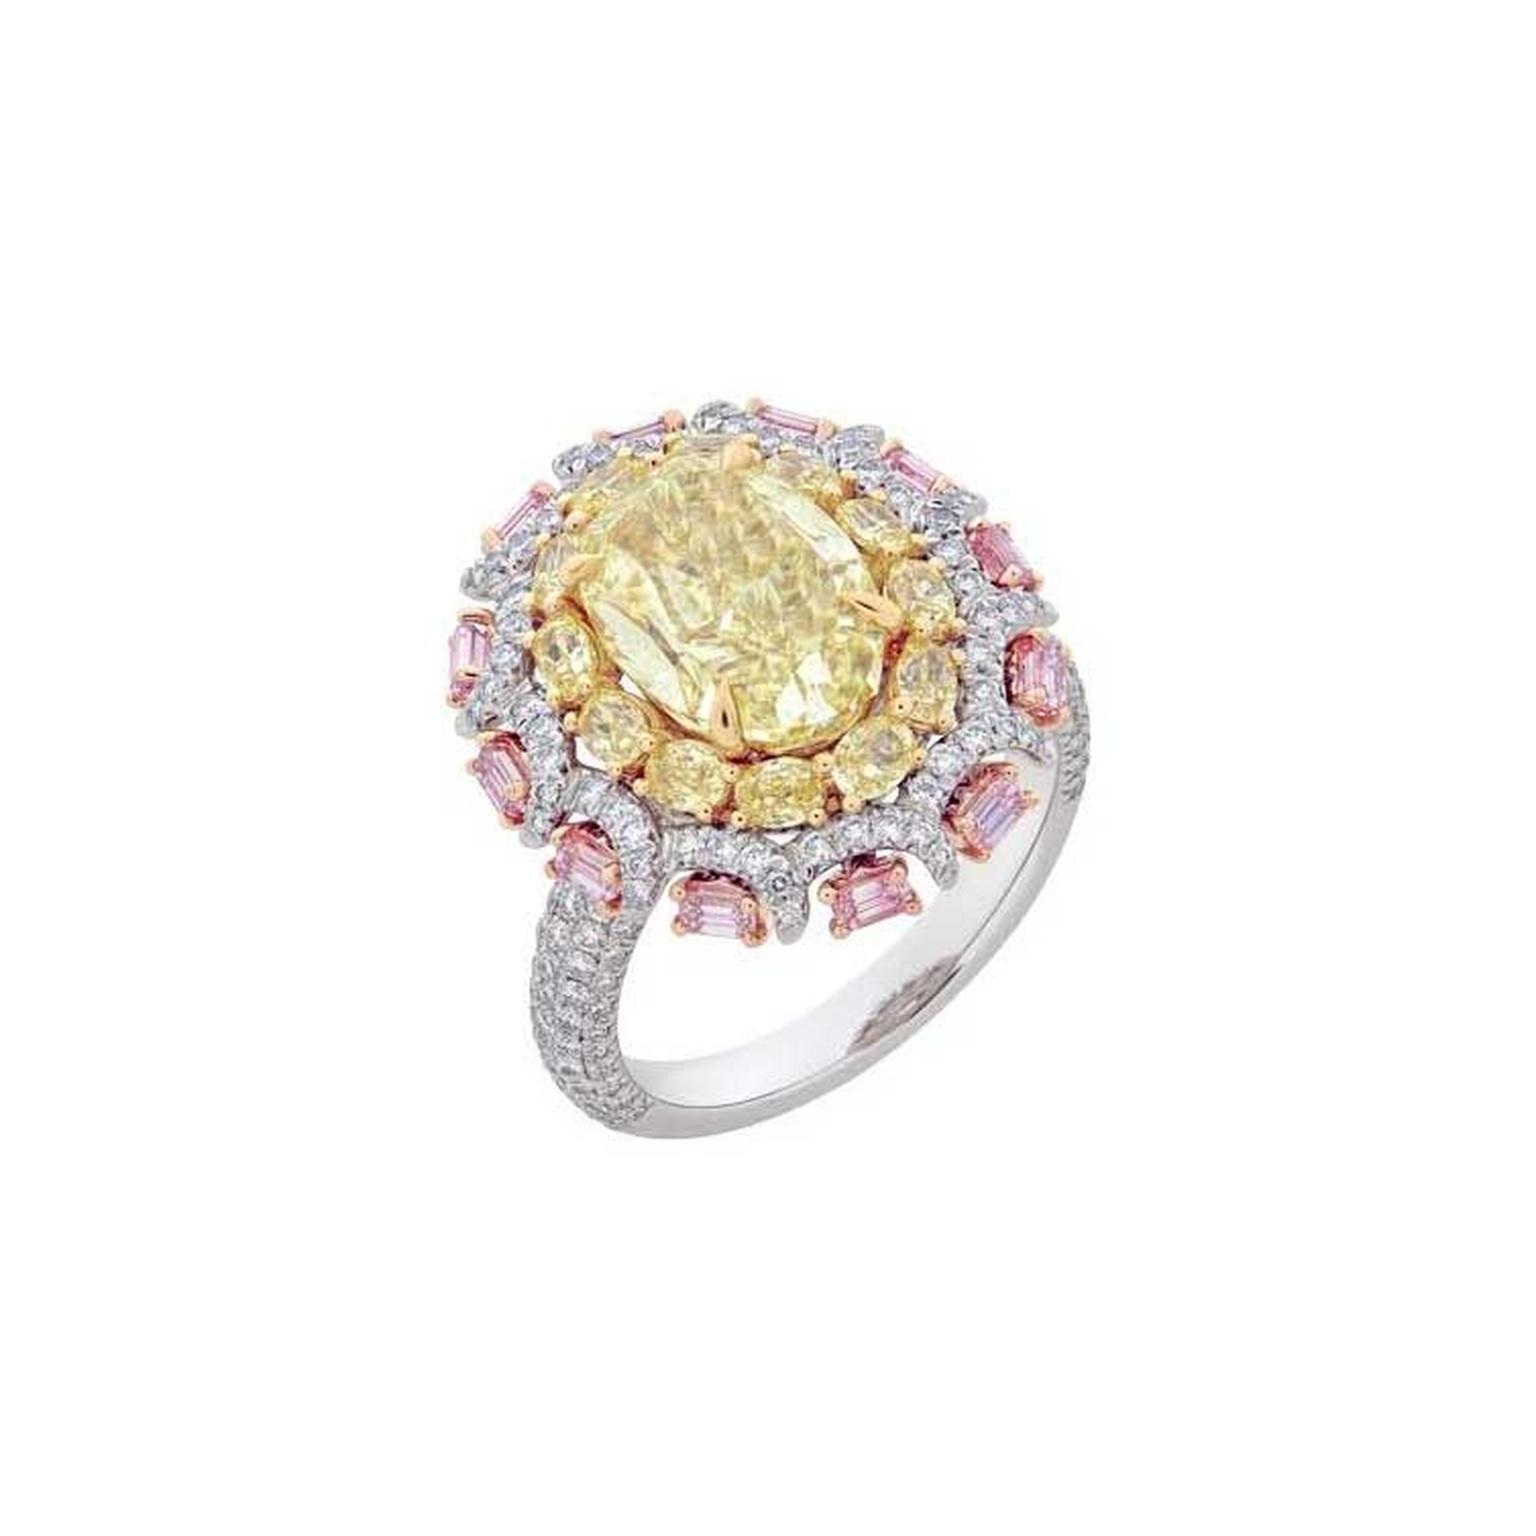 Nirav Modi yellow and pink diamond en tremblant ring